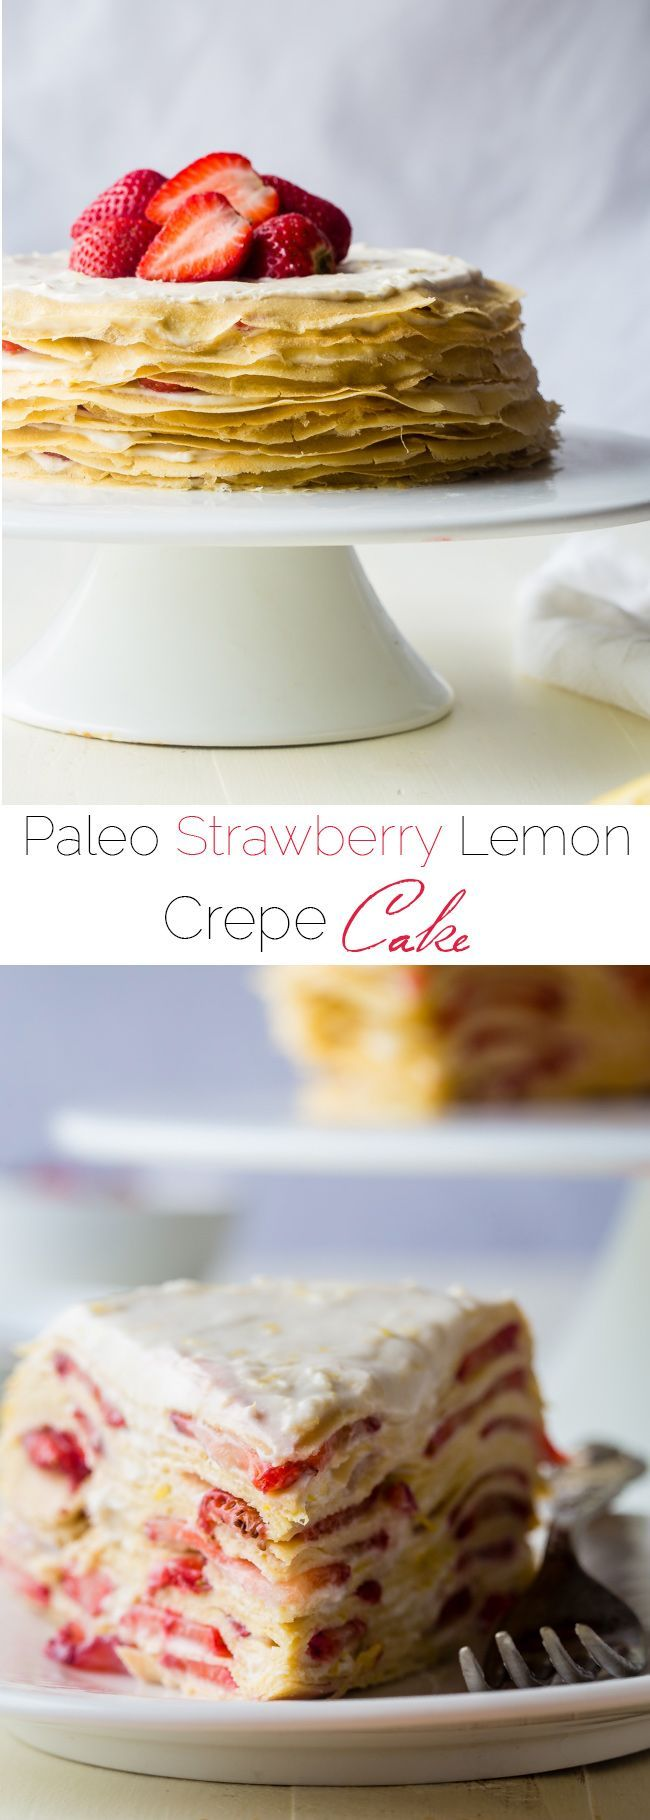 Strawberry Lemon Paleo Crepe Cake with Coconut Cream - This cake is made out of paleo crepes layered with rich, sweet lemon coconut cream and fresh strawberries. It's a gluten free dessert, that's perfect for a spring brunch or Mothers day!